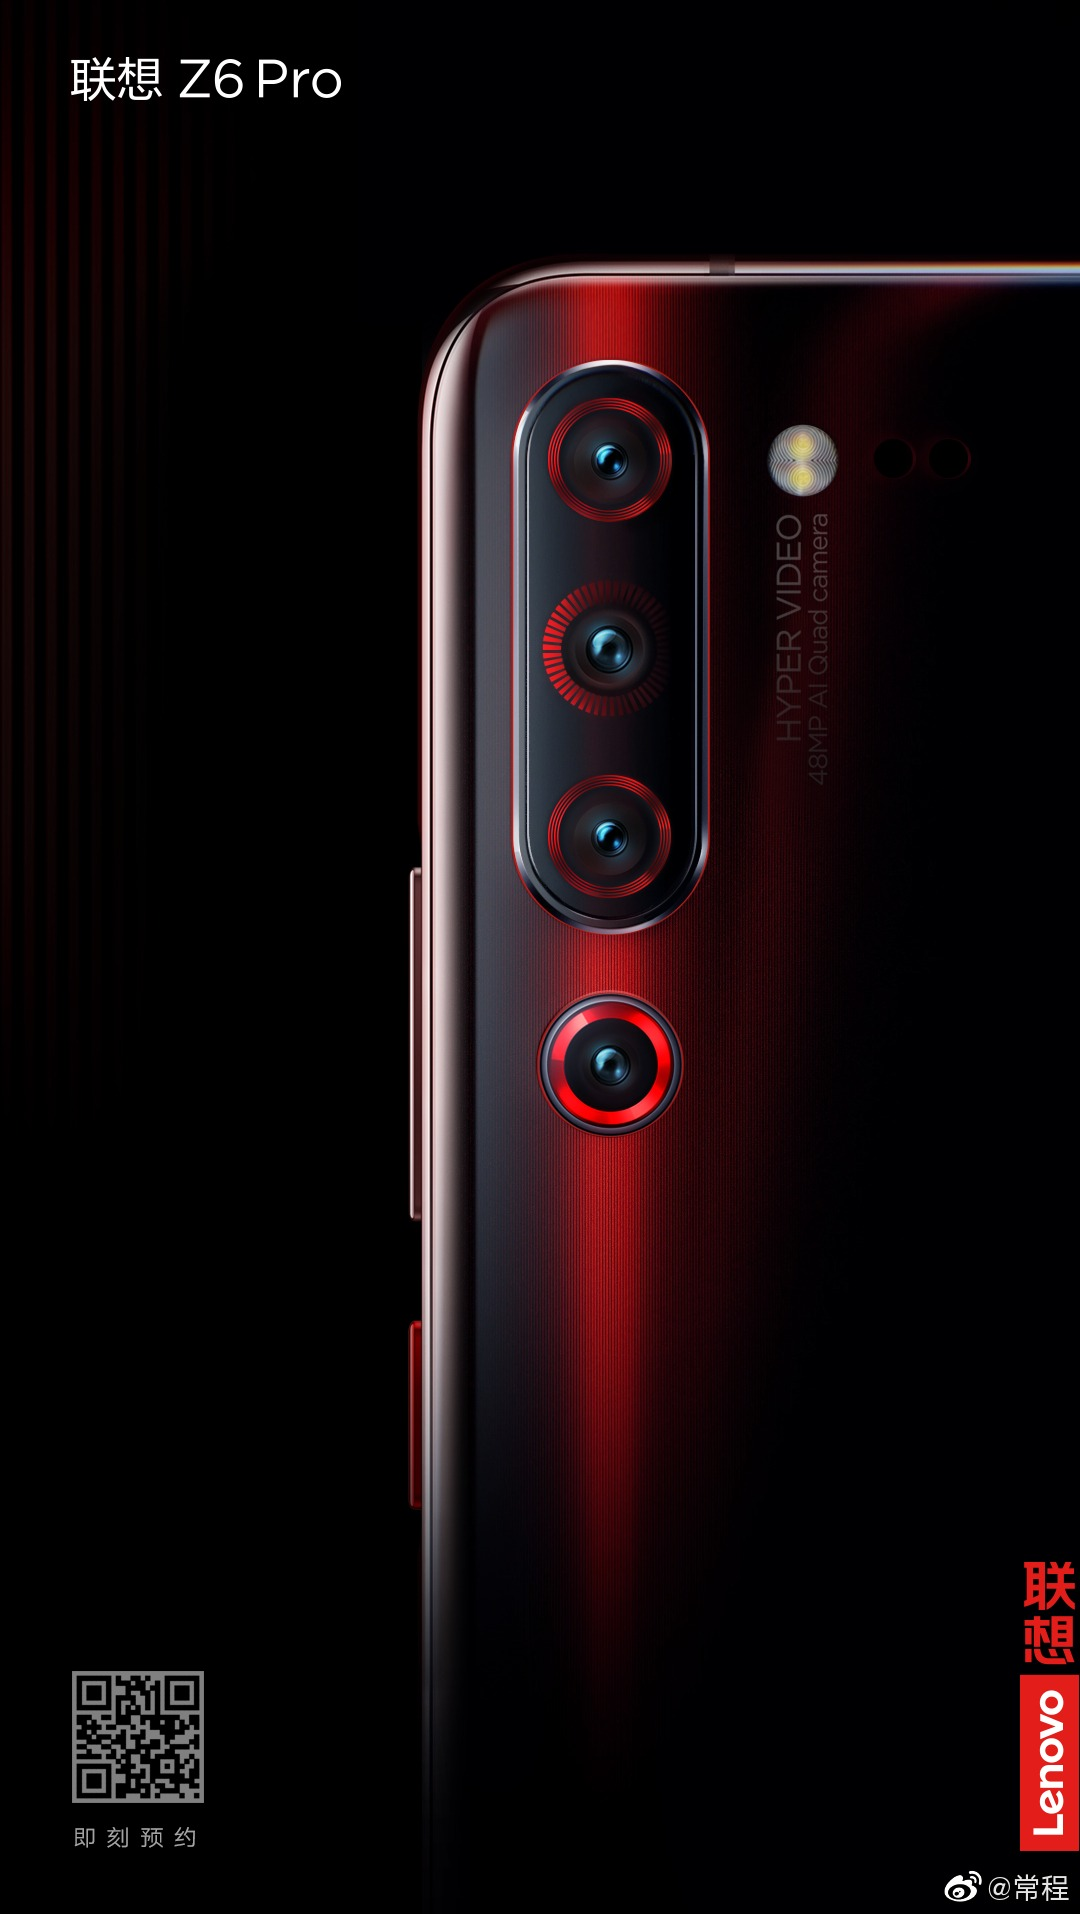 VP shares Lenovo Z6 Pro specs ahead of the official launch